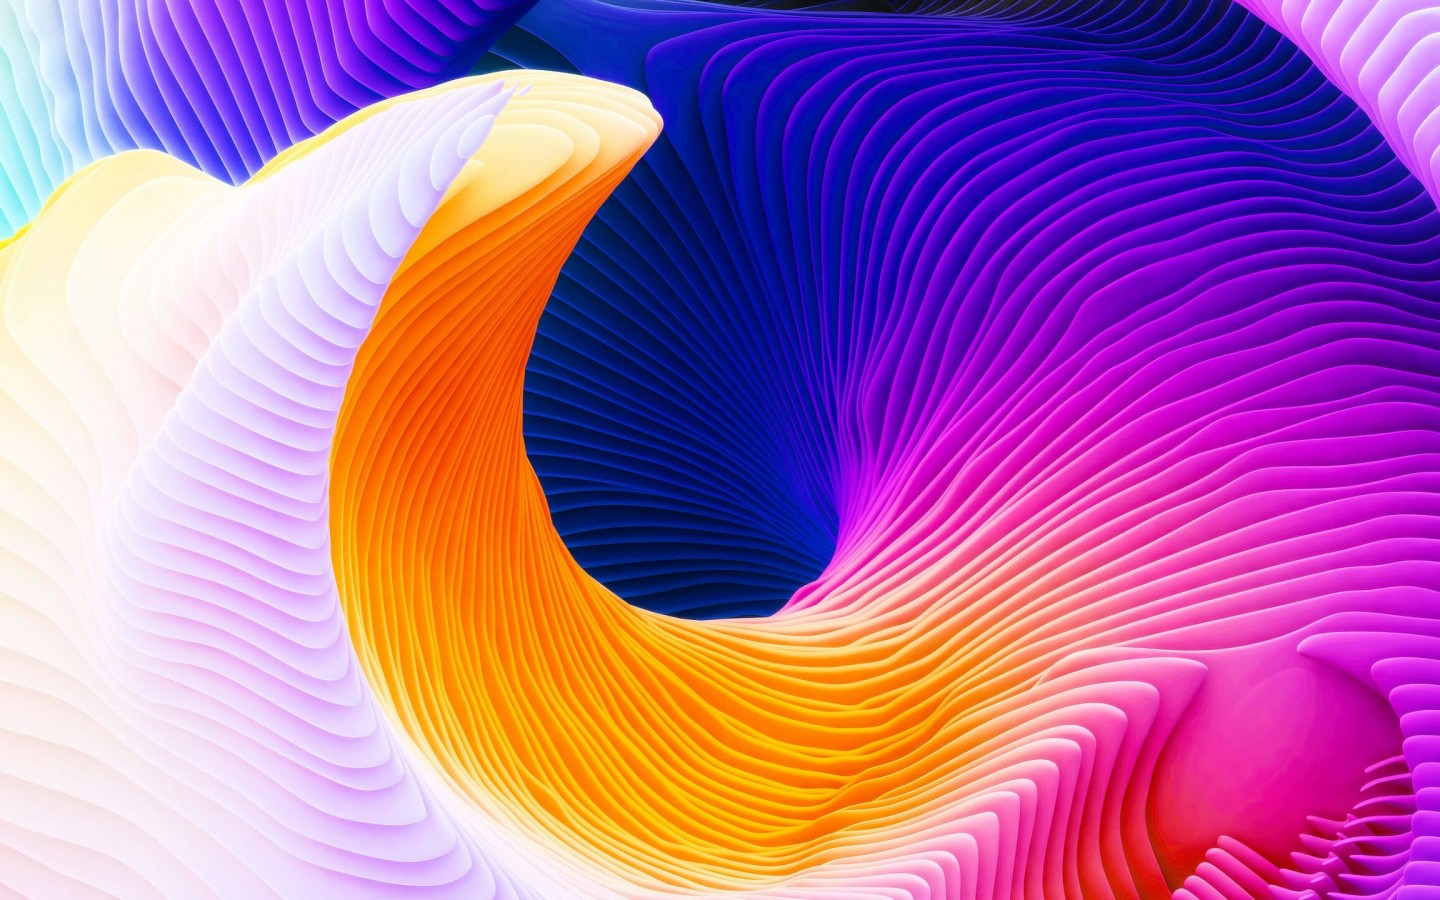 download colorful spiral hd wallpaper for 1440 x 900